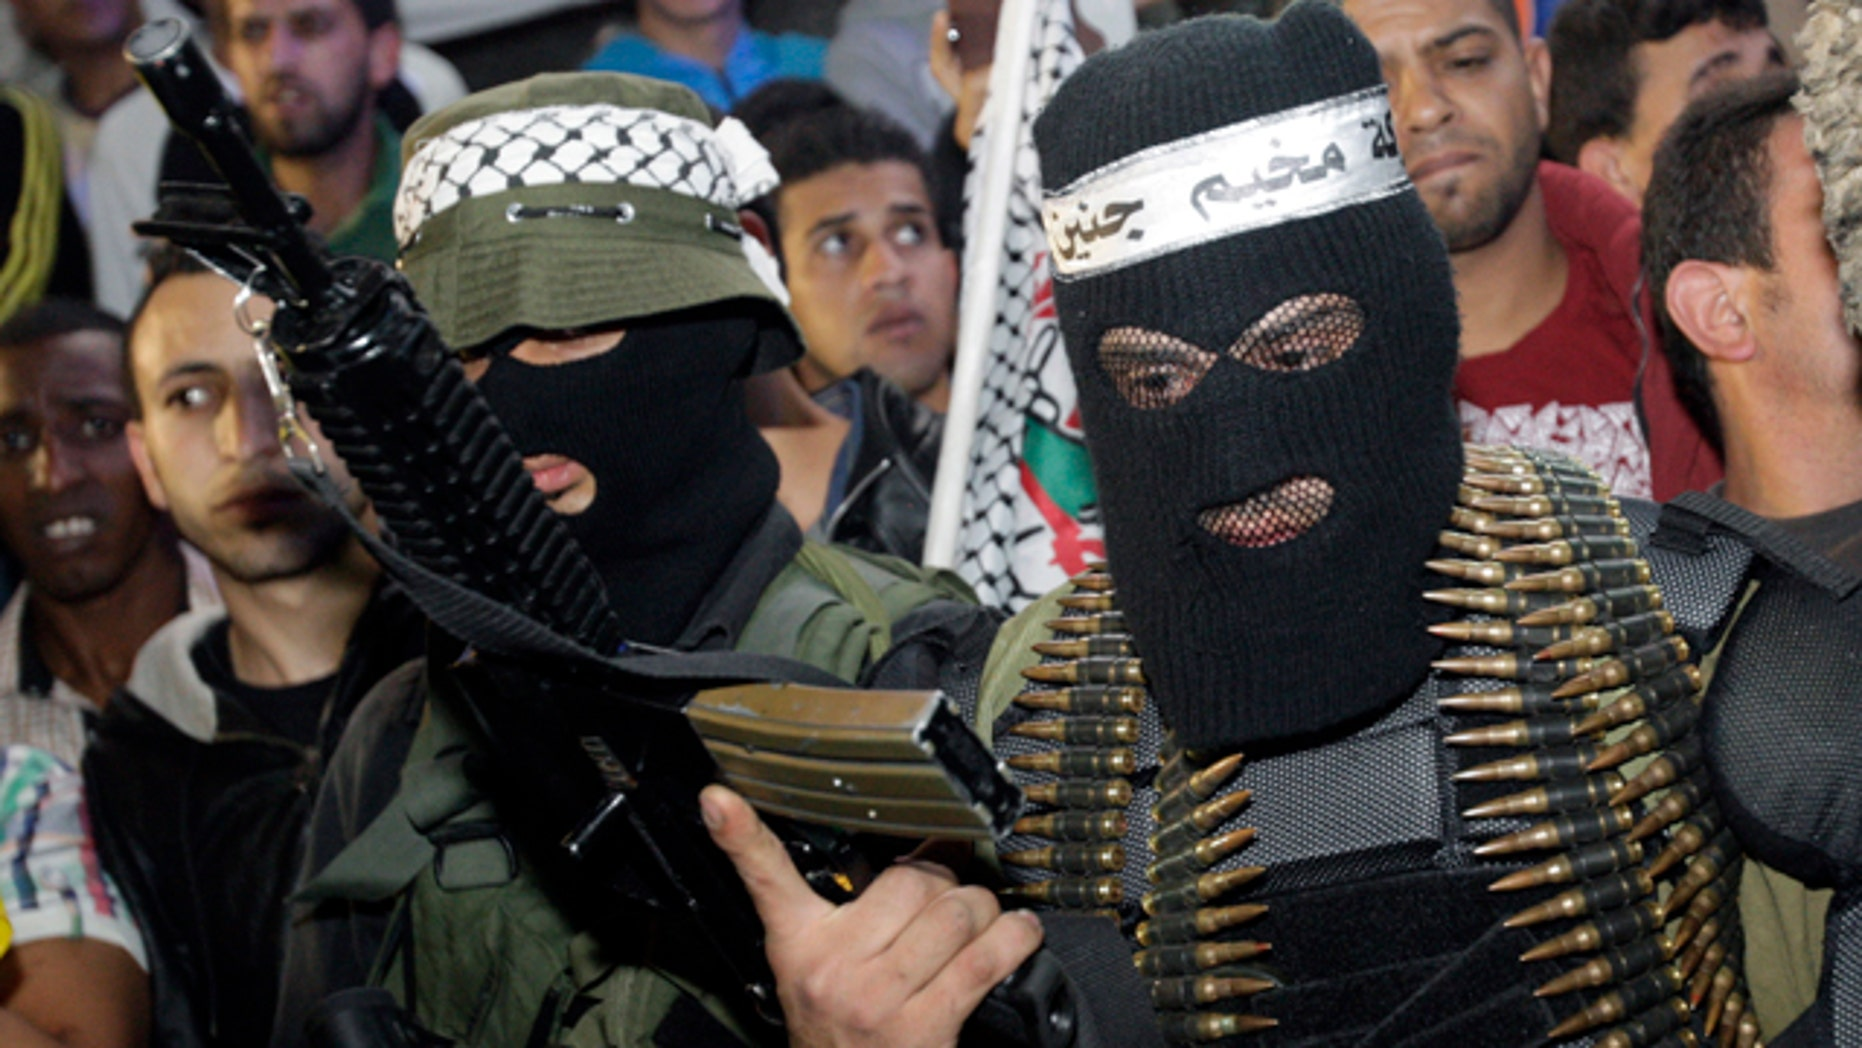 April 7, 2014: A Palestinian militant holds a weapon during a ceremony to mark the 12th anniversary of the Israeli army's 'Defensive Shield' operation in the West Bank refugee camp of Jenin. (AP Photo/Mohammed Ballas)